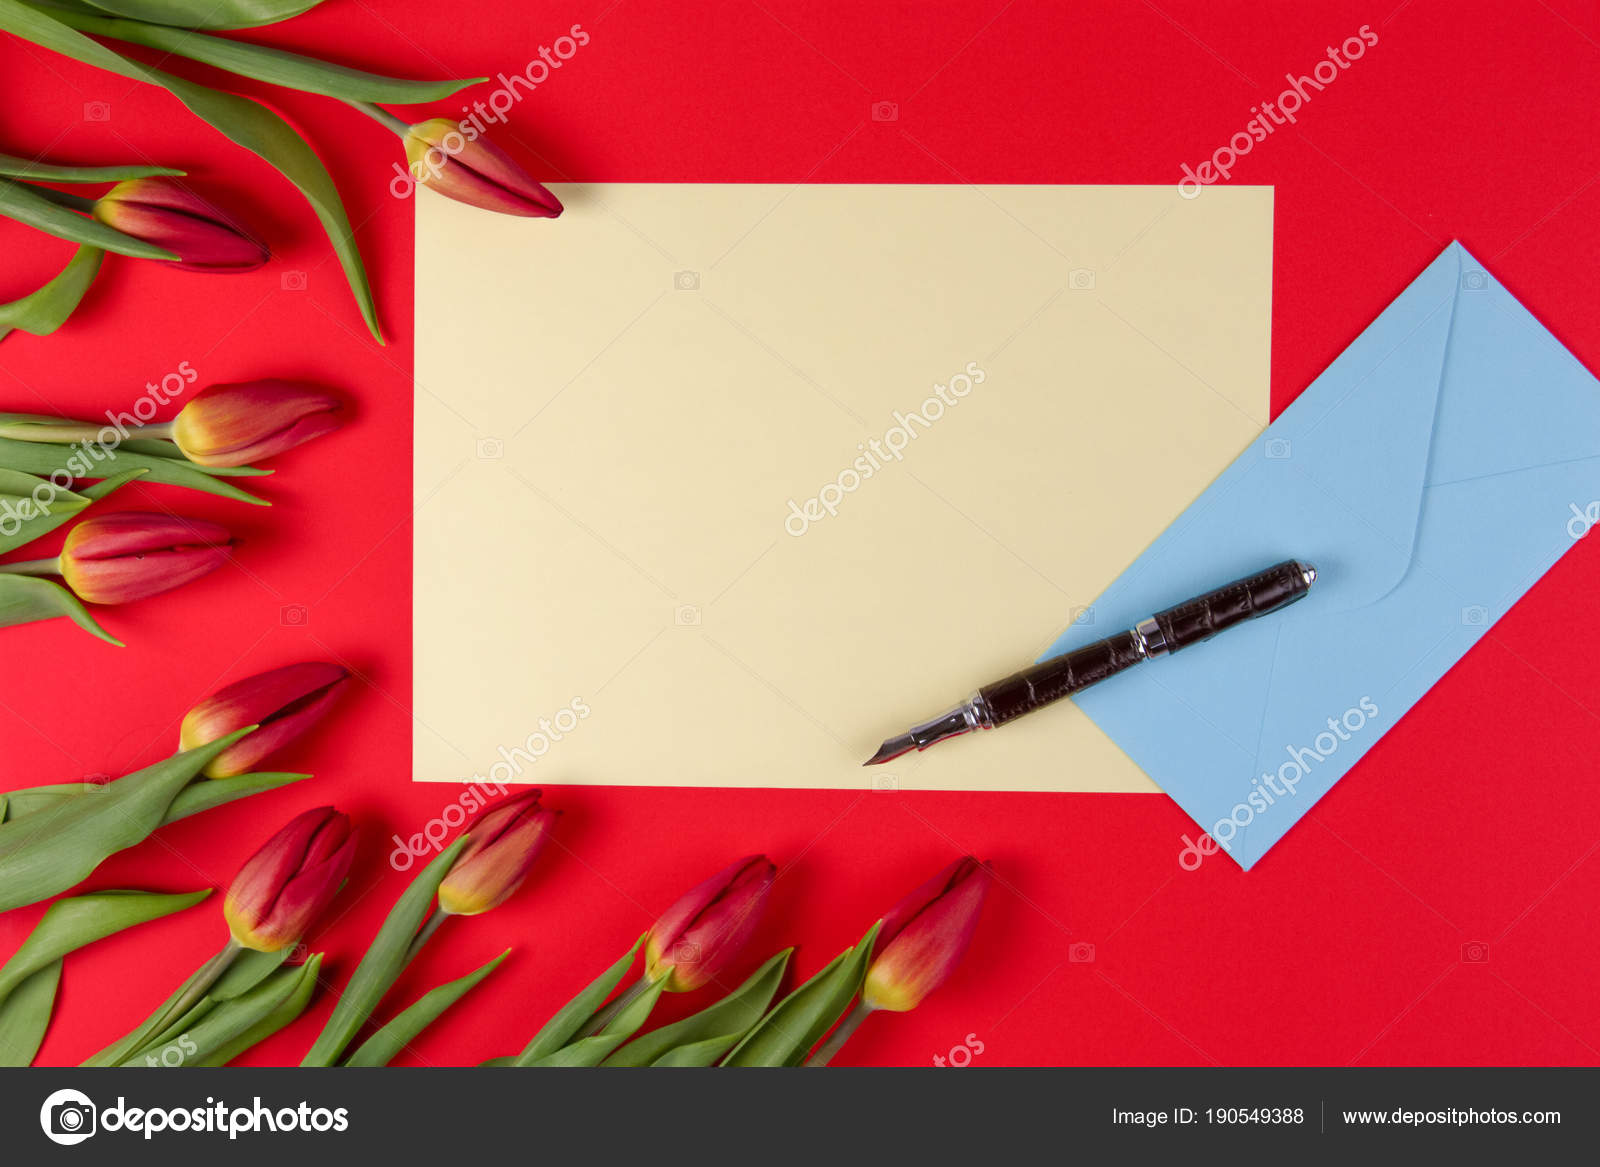 Blank Card Pen Blue Envelope And Red Spring Tulips Flowers On Red